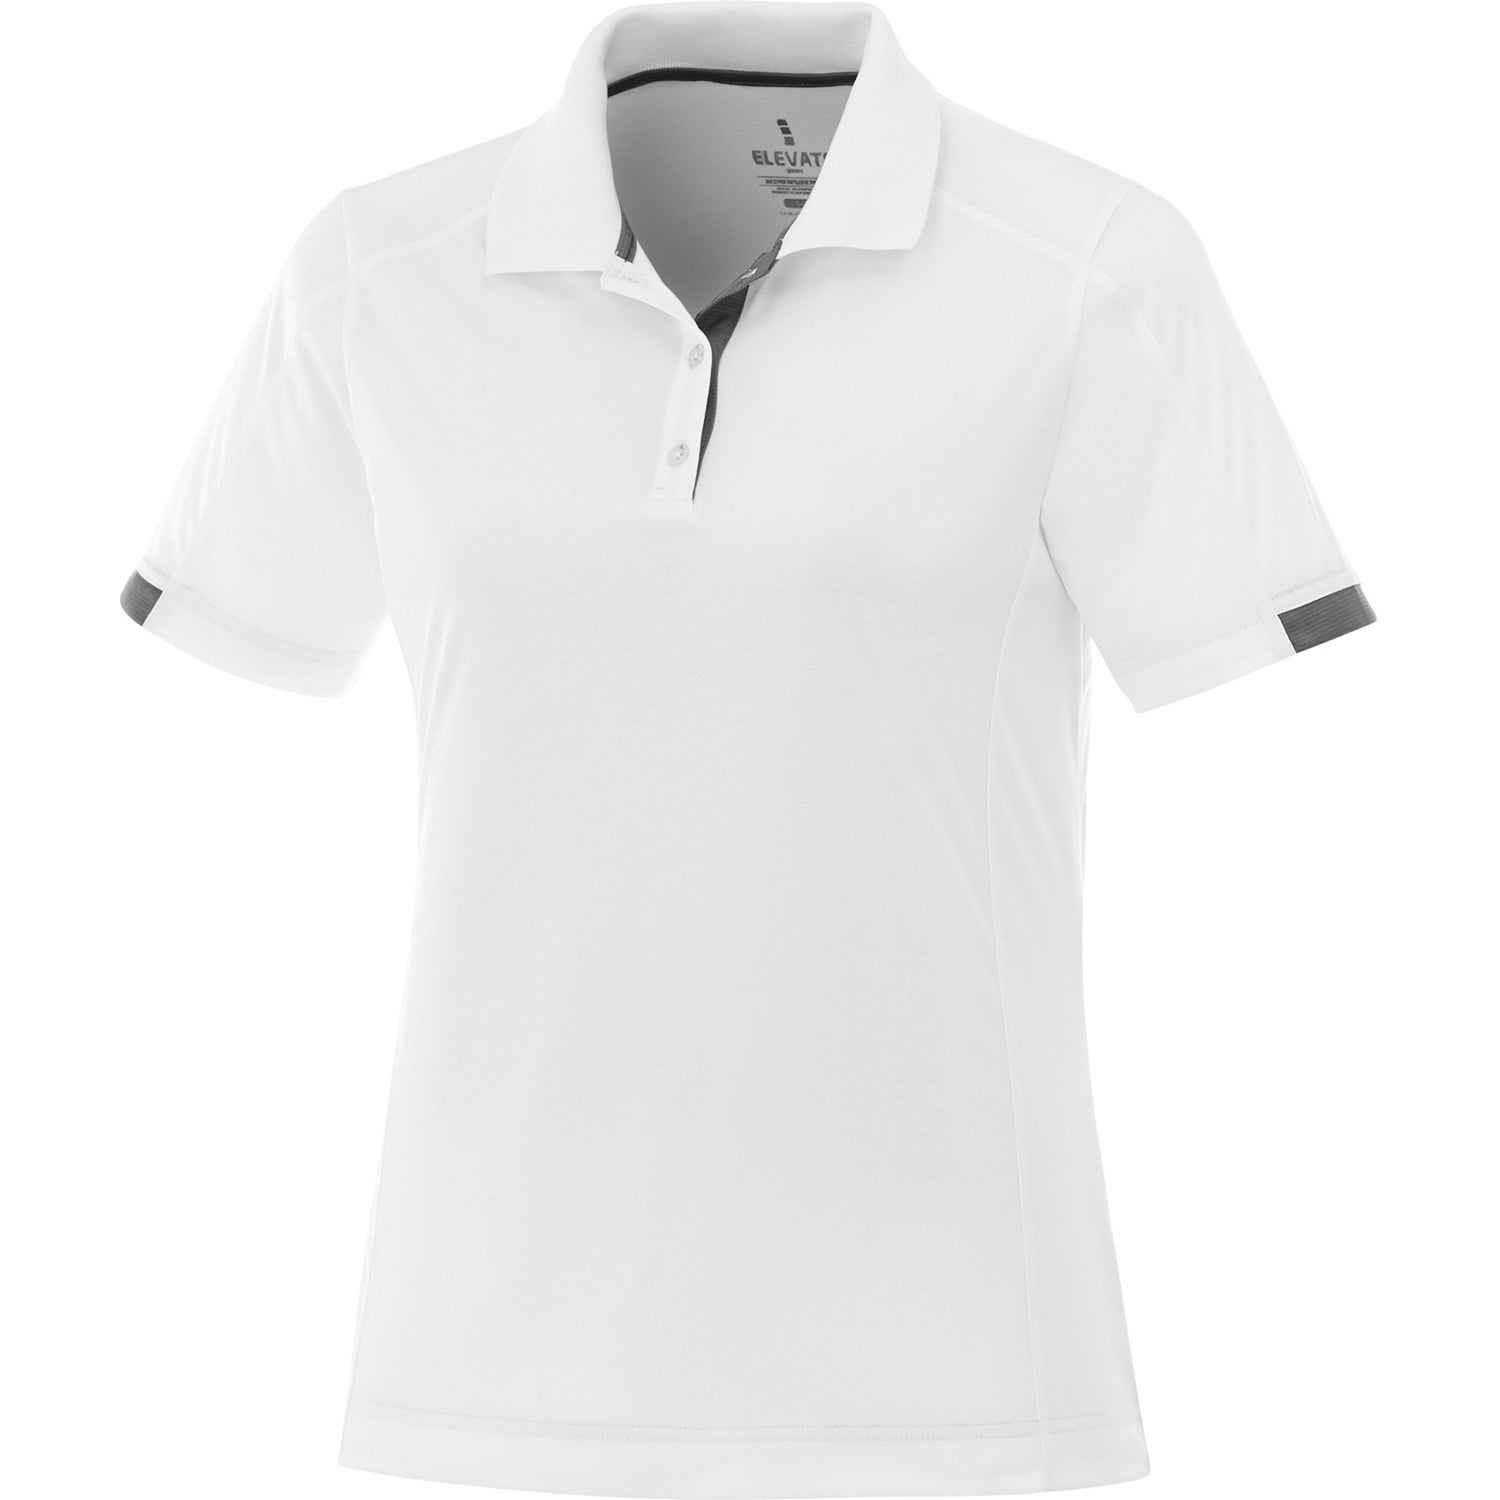 Promotional Women s Kiso Short Sleeve Polo Shirt by TRIMARKs with ... 80388e41f1